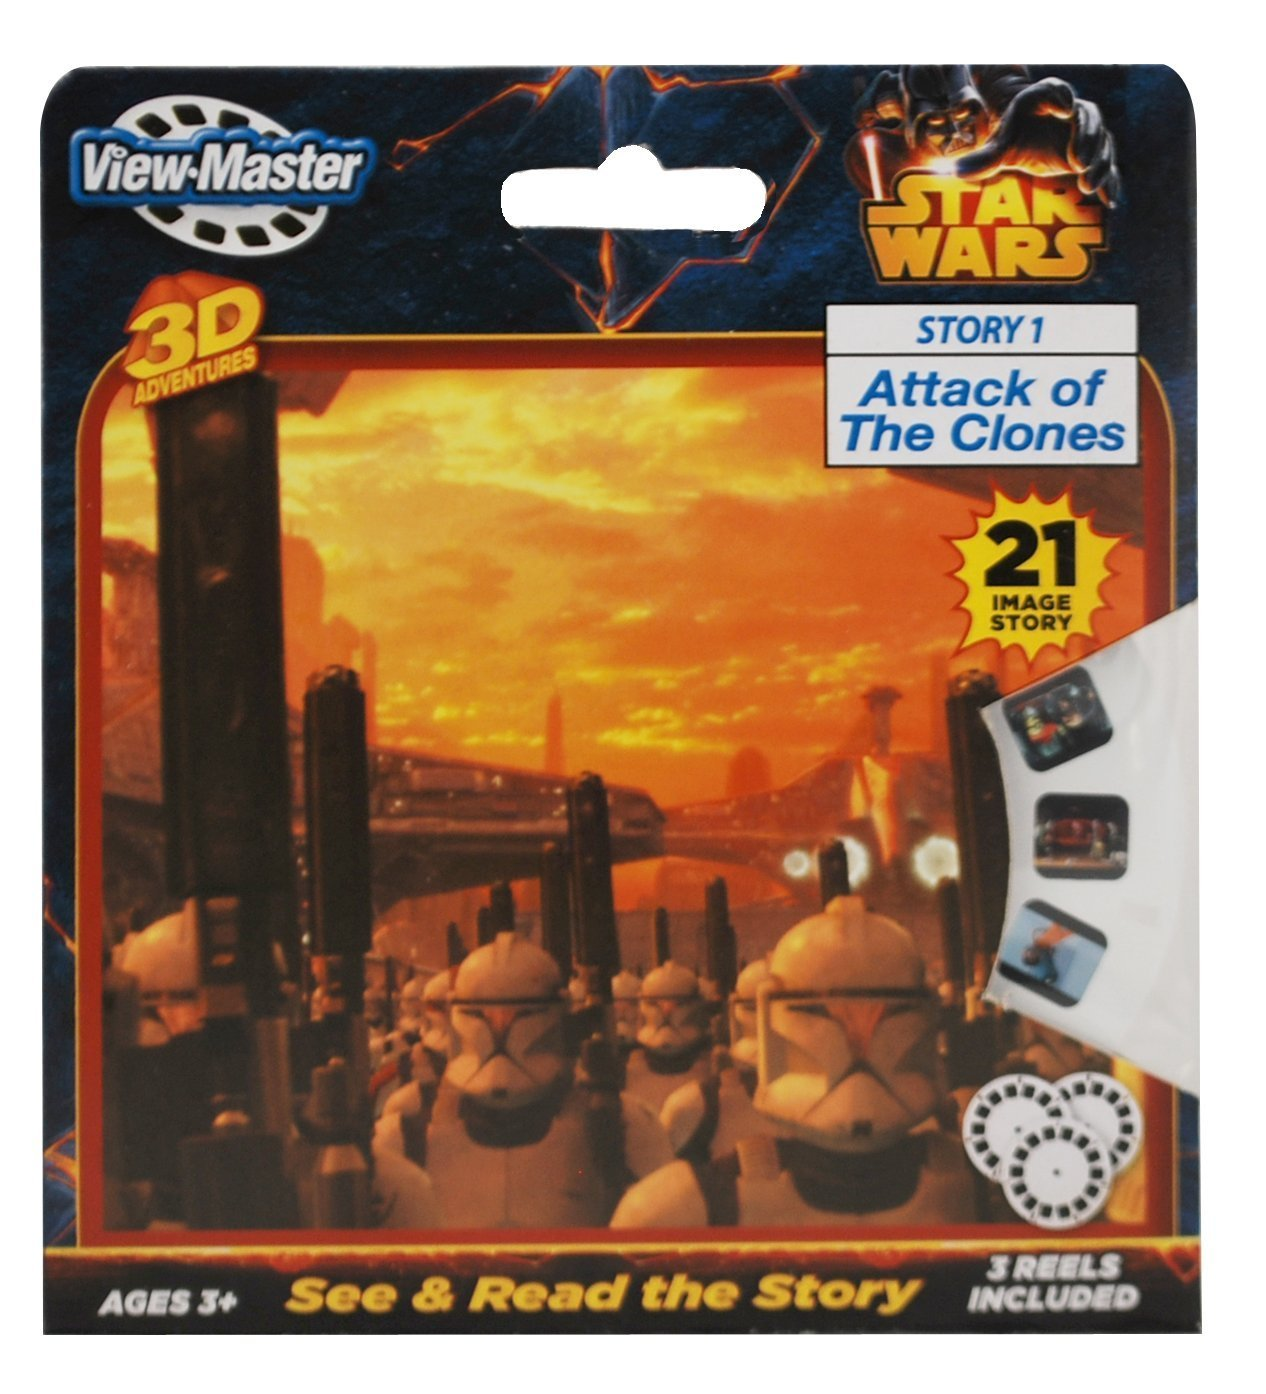 Star Wars - Attack of the Clones by 3Dstereo ViewMaster